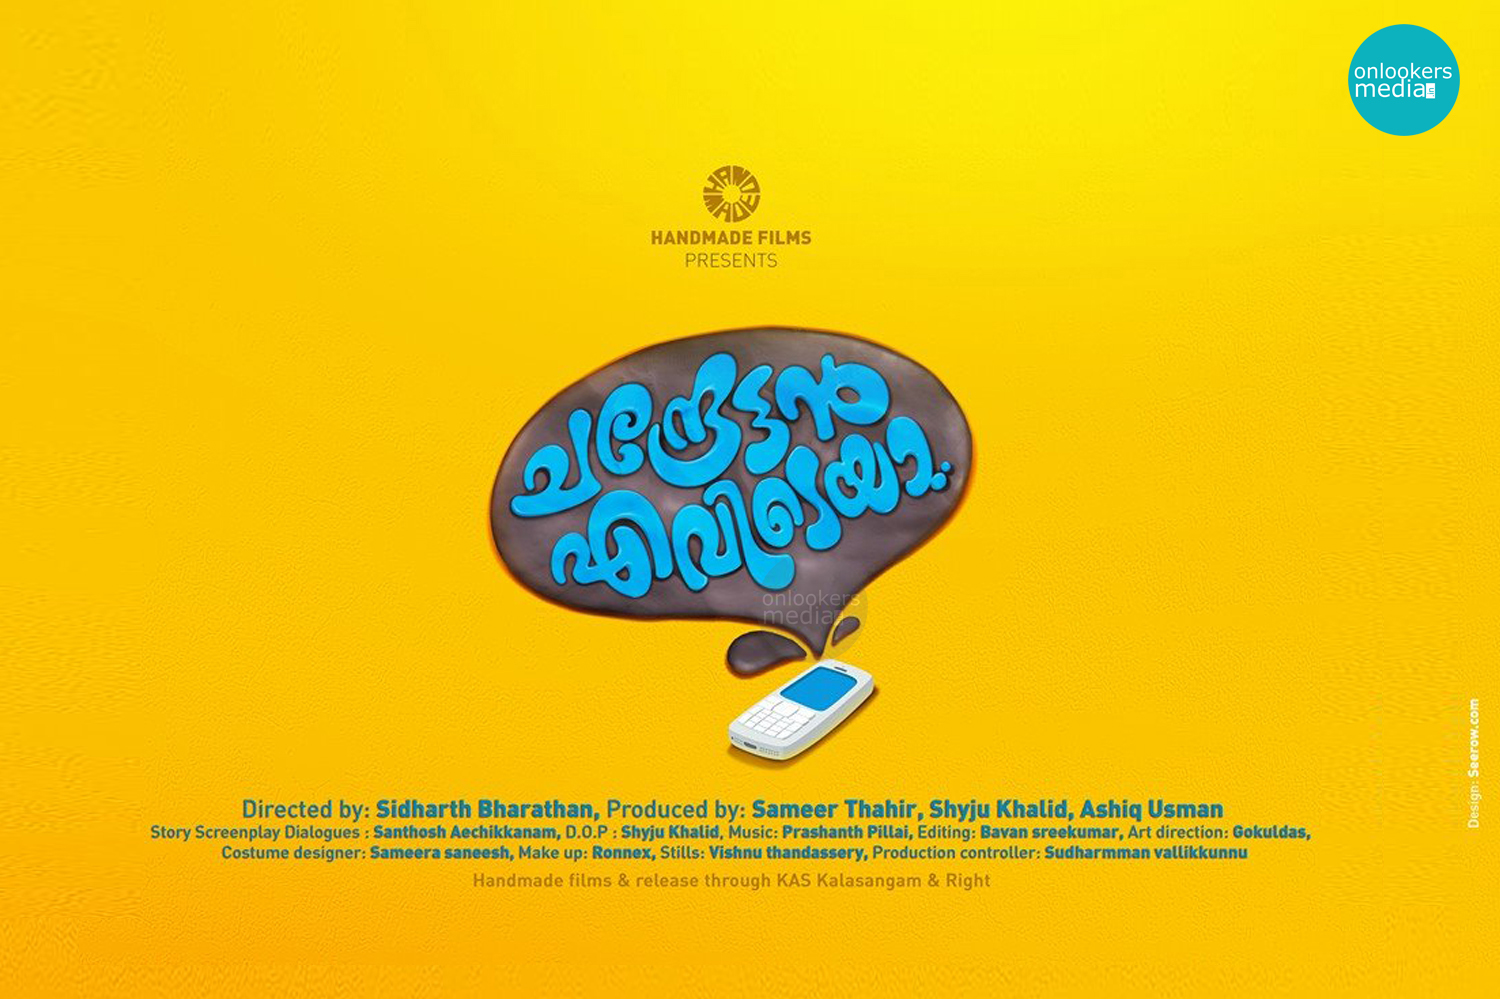 Chandrettan Evideya Poster-Stills-Images-Photos-Dileep-Vedhika-Anusree-Onlookers Media